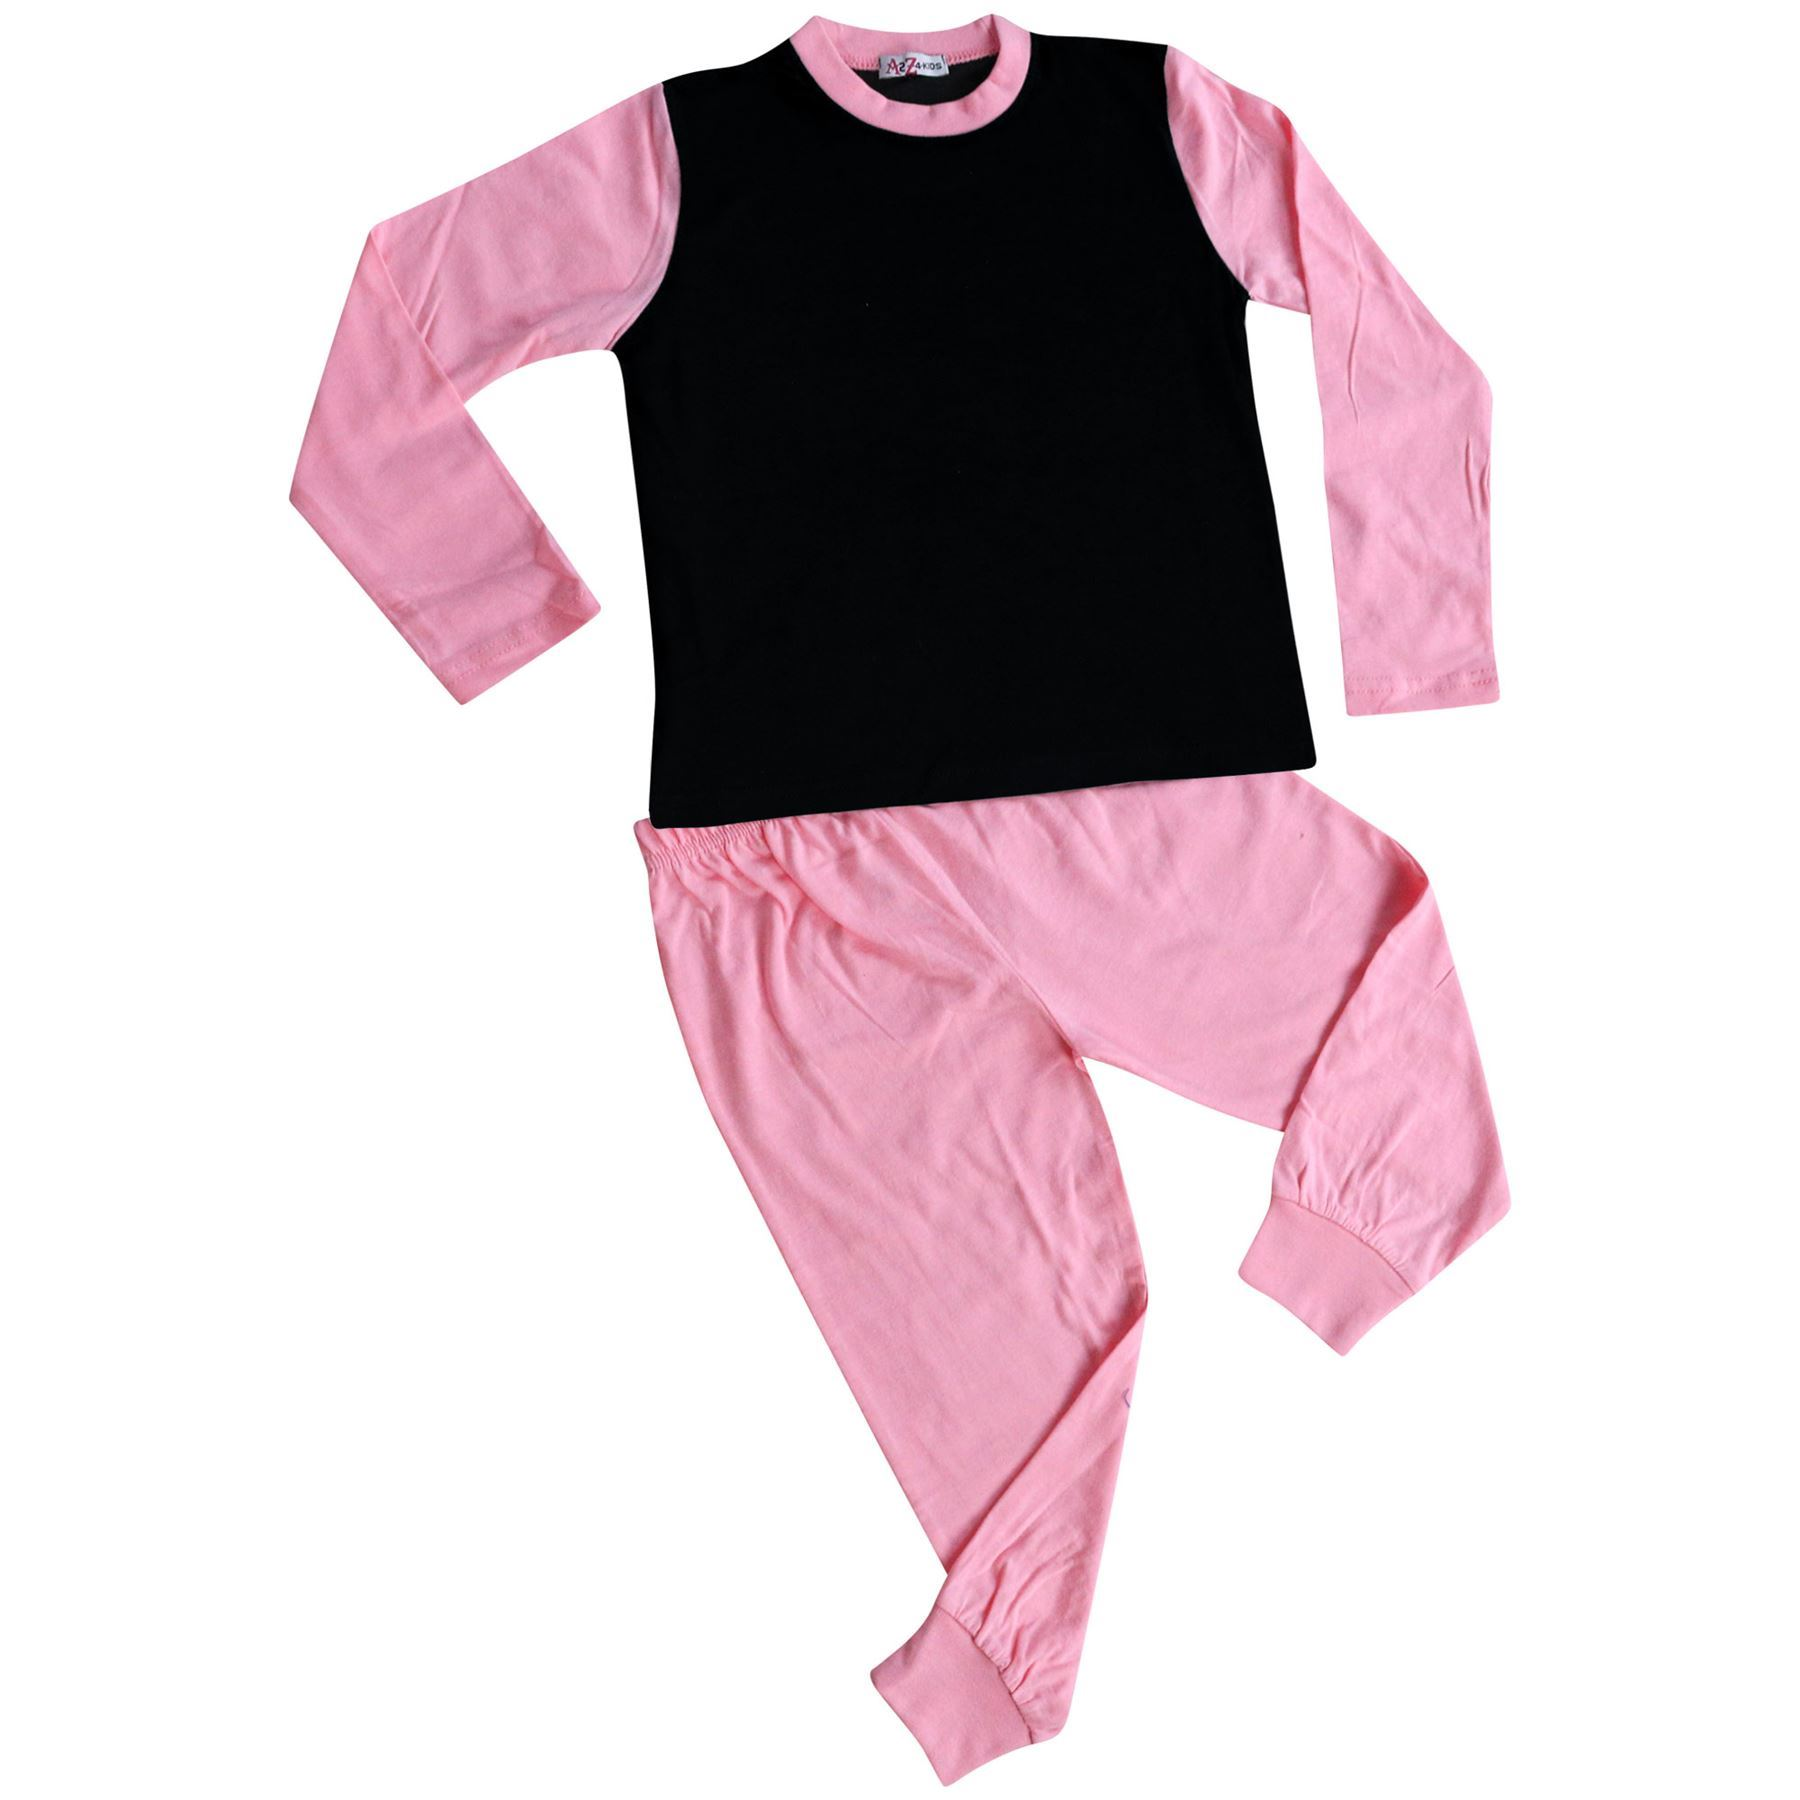 Kids Girls Pjs Contrast Lilac Color Plain Stylish Pyjamas Set New Age 2-13 Years